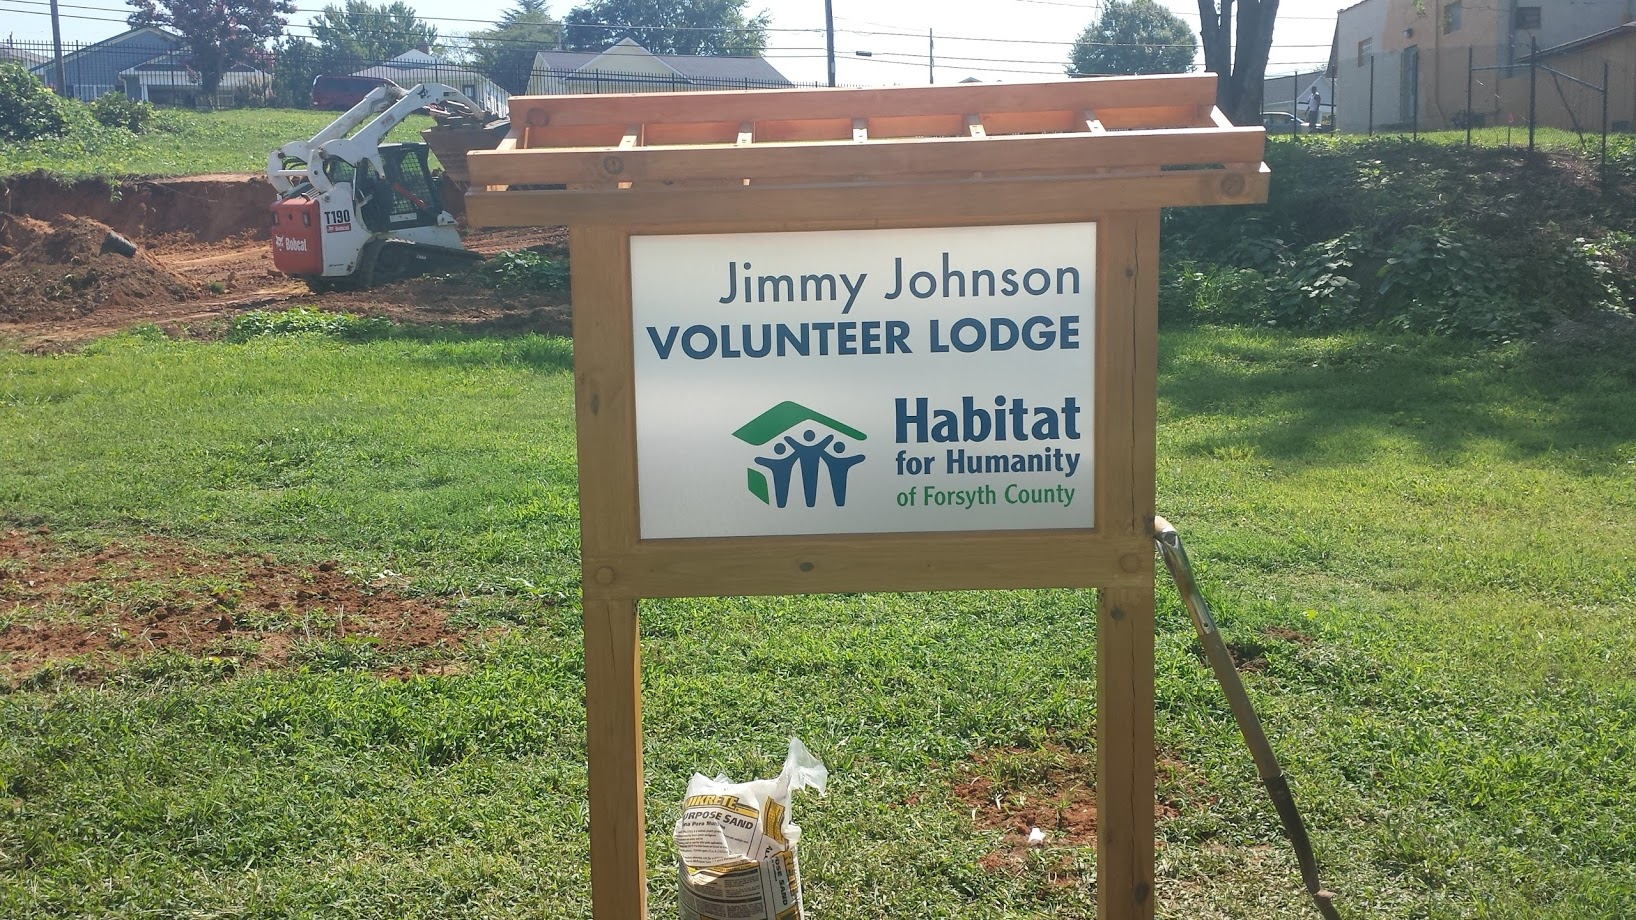 jimy johnson volunteer lodge signage